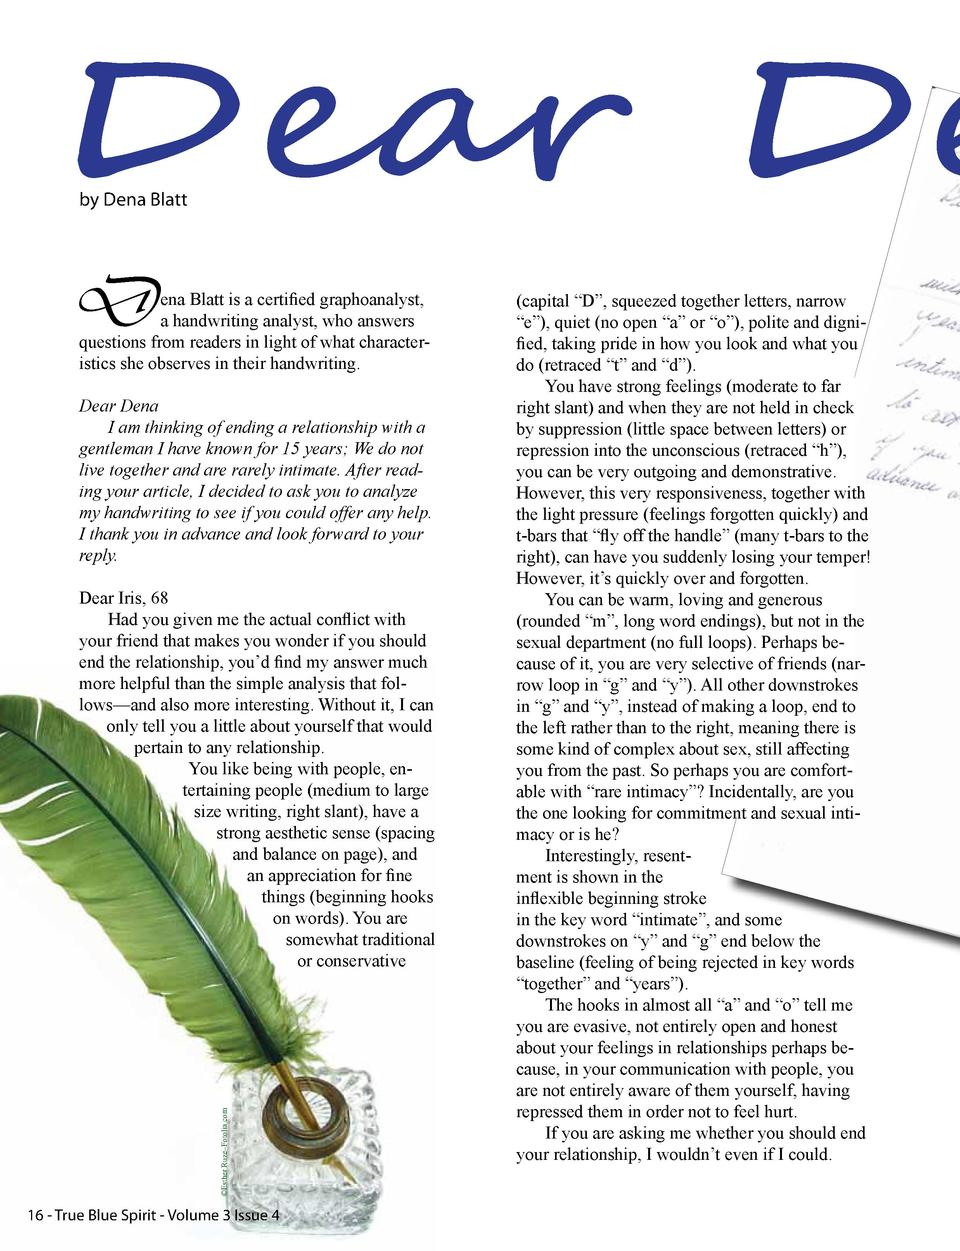 Dear De by Dena Blatt  D  ena Blatt is a certified graphoanalyst, a handwriting analyst, who answers questions from reader...